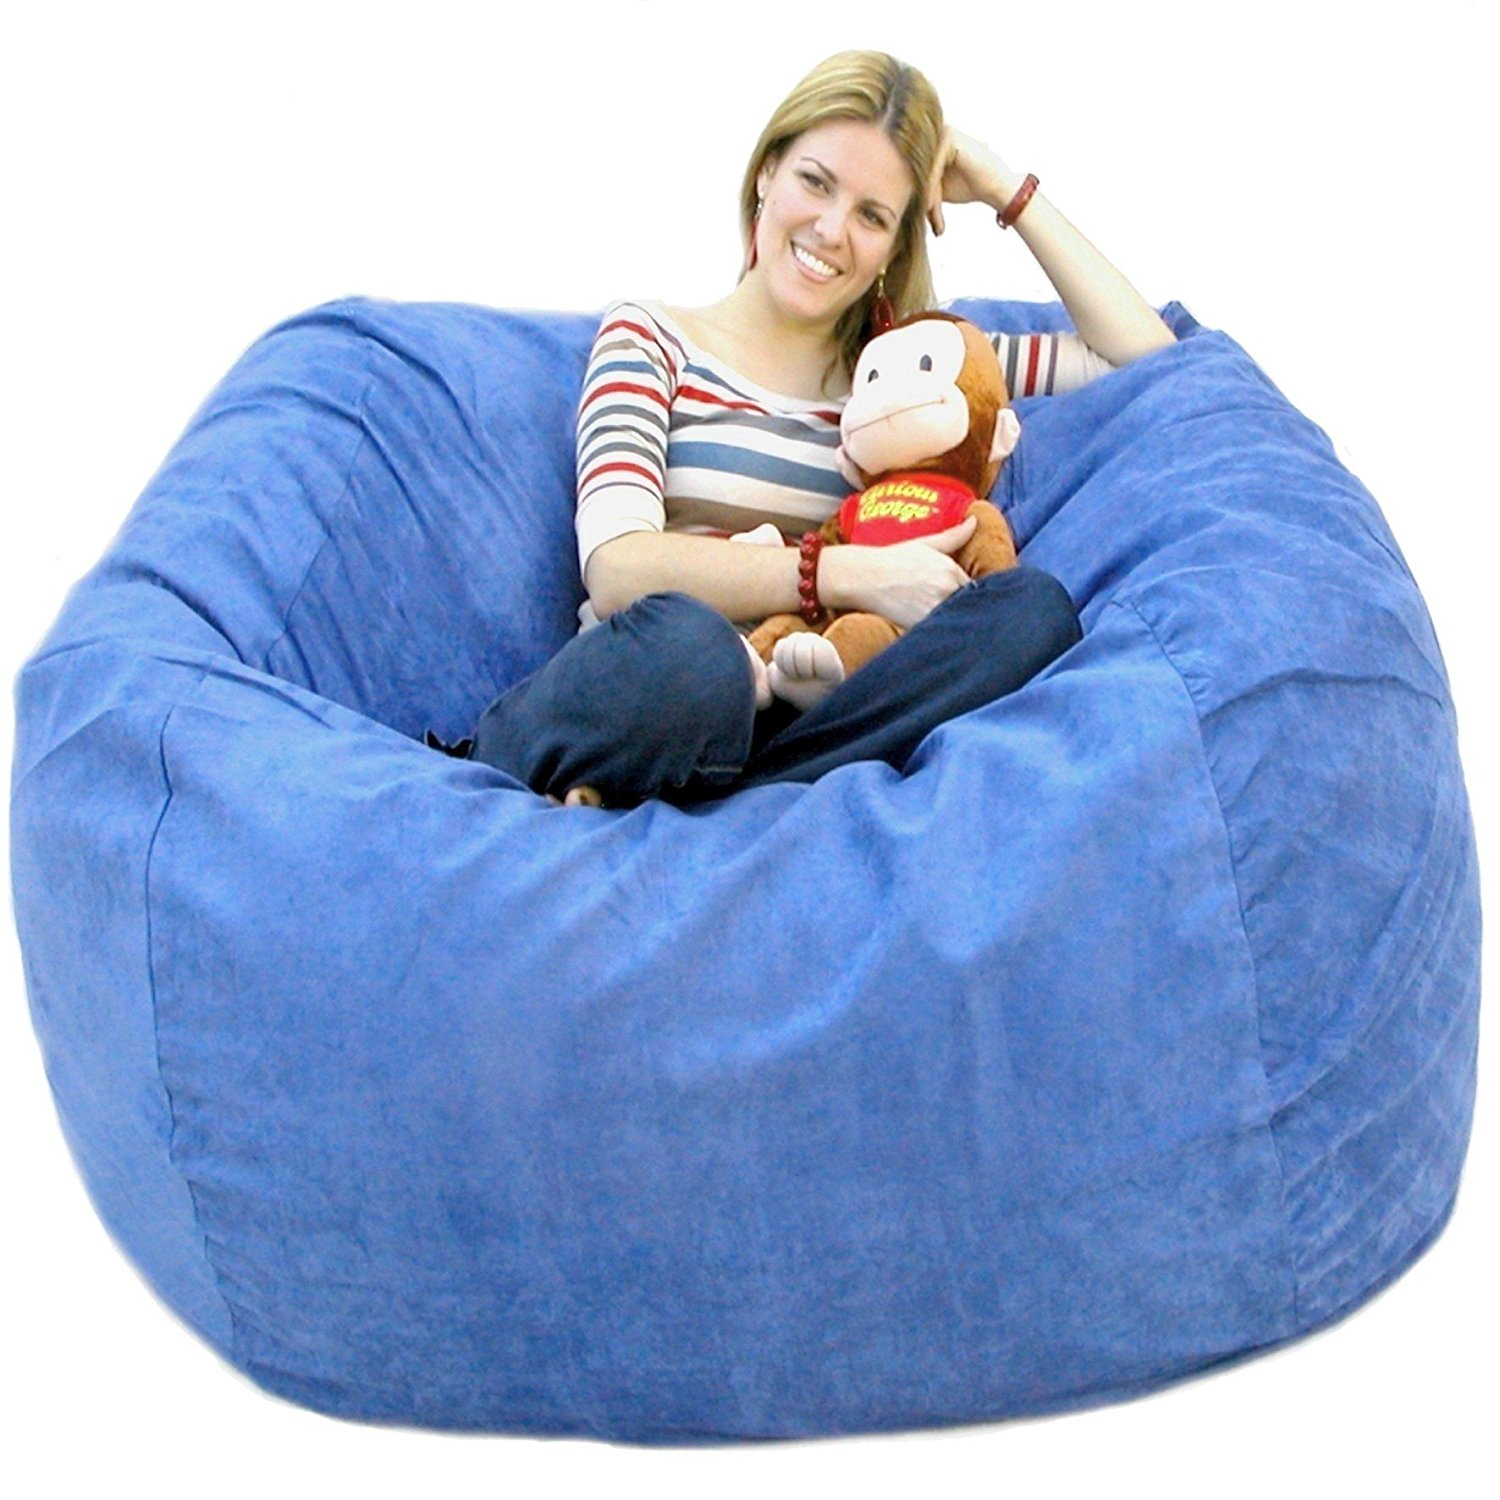 BEST BEAN BAG CHAIRS FOR ADULT IN 2020